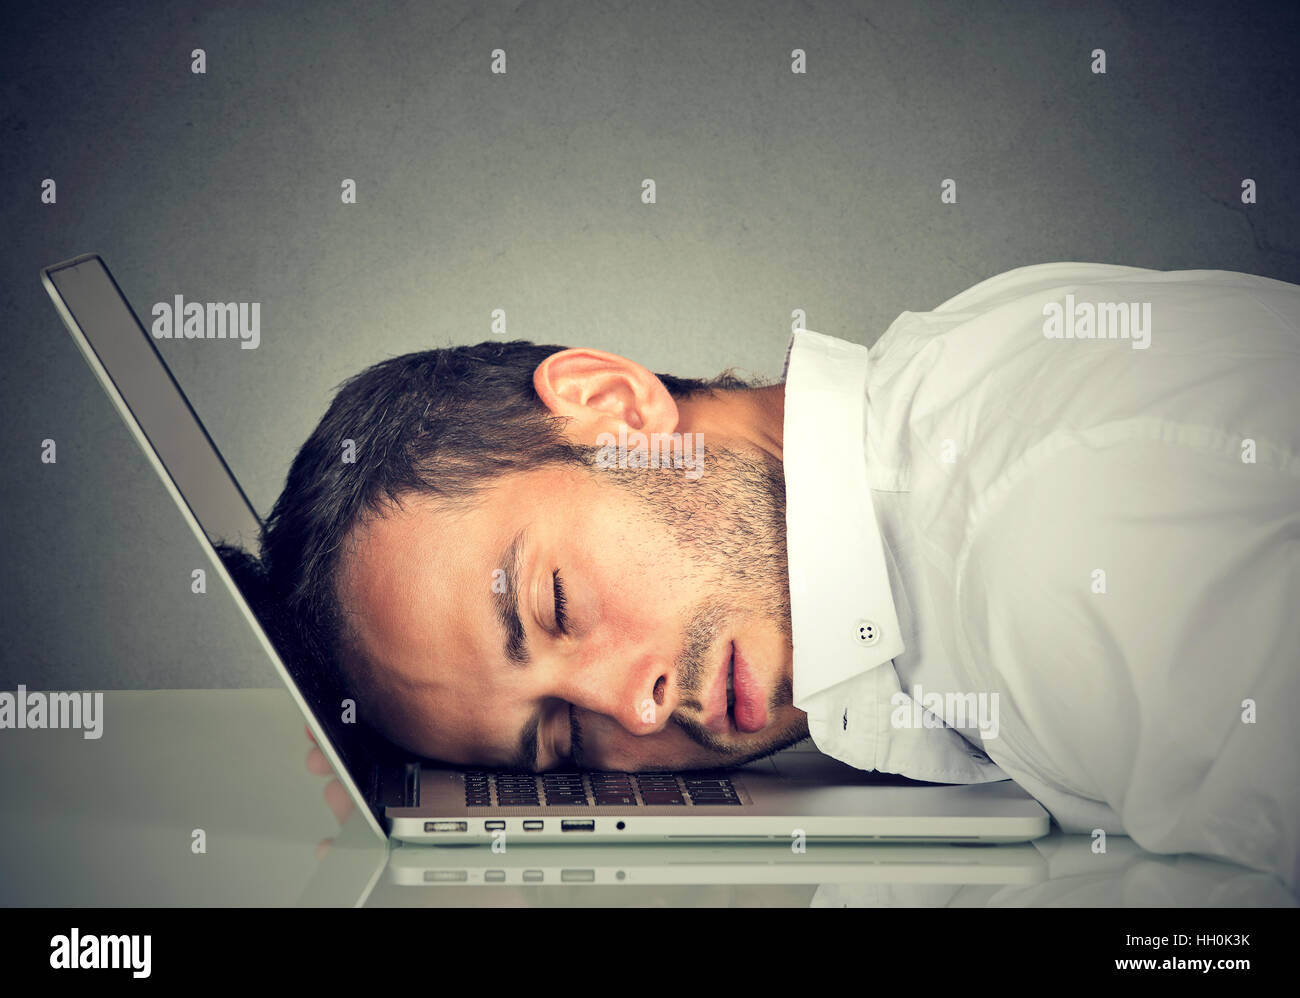 Business man sleeping on his laptop in his office - Stock Image